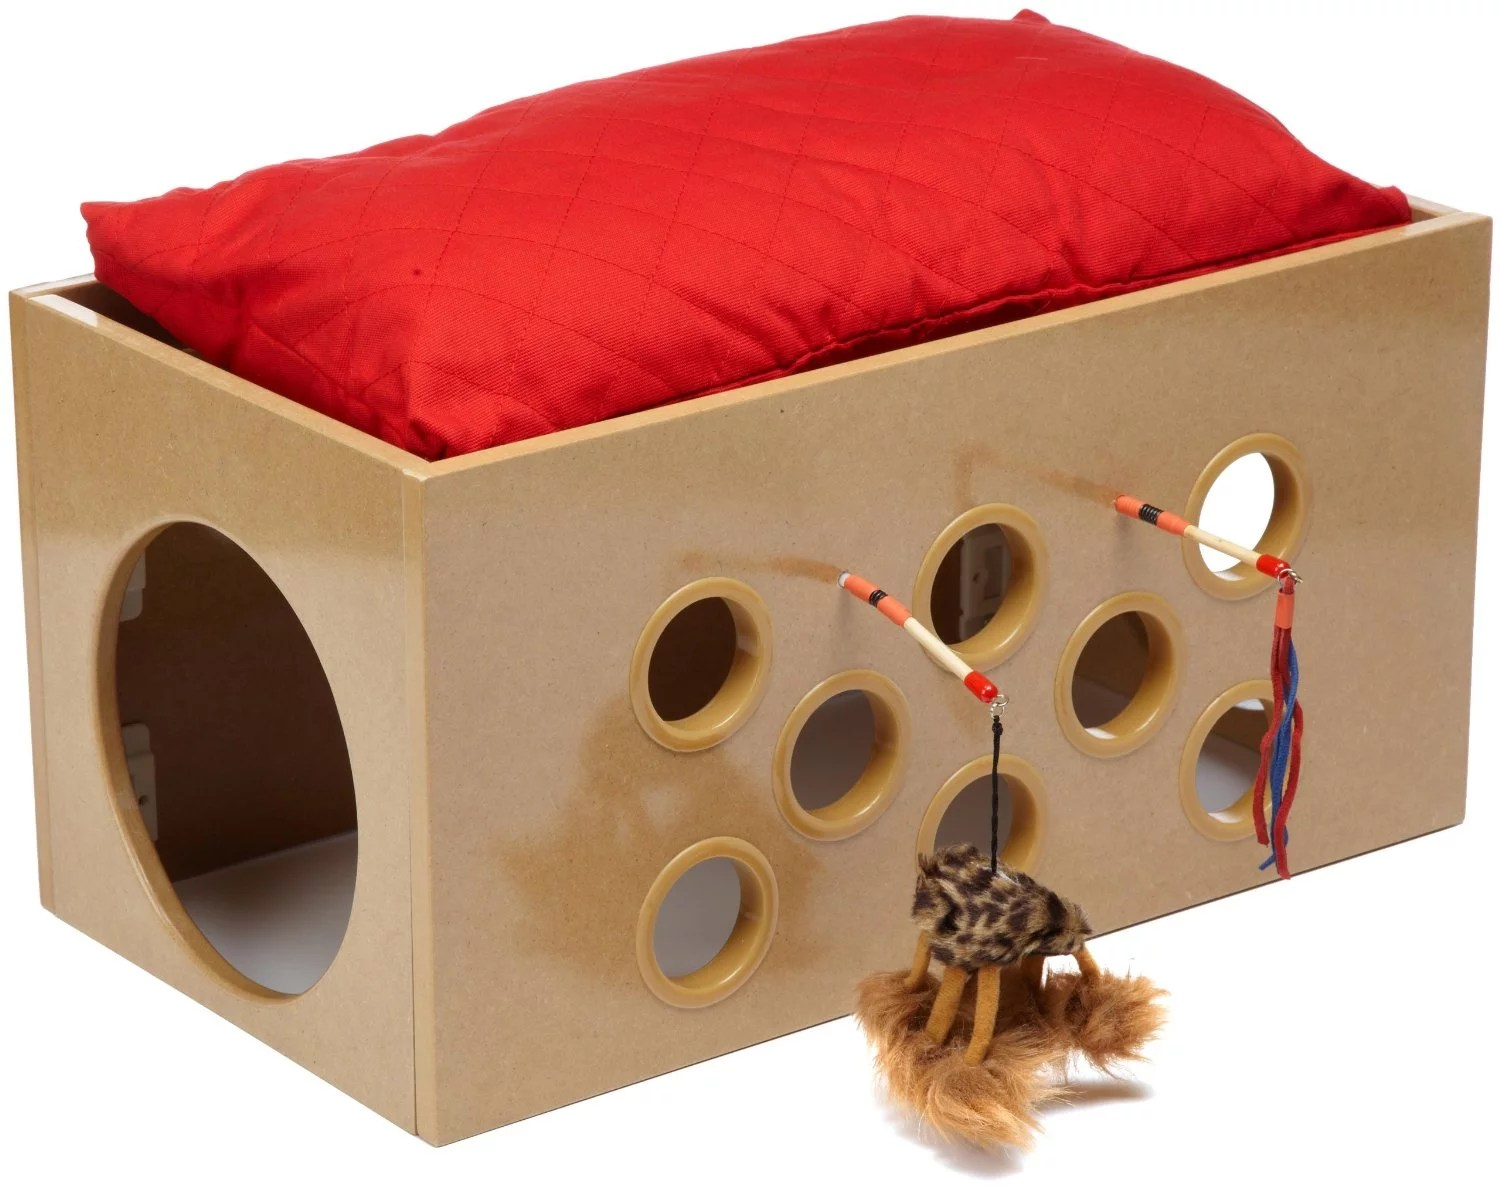 Cool Cat Supplies Cool Cat House Our Favorite Pet Products Of 2013